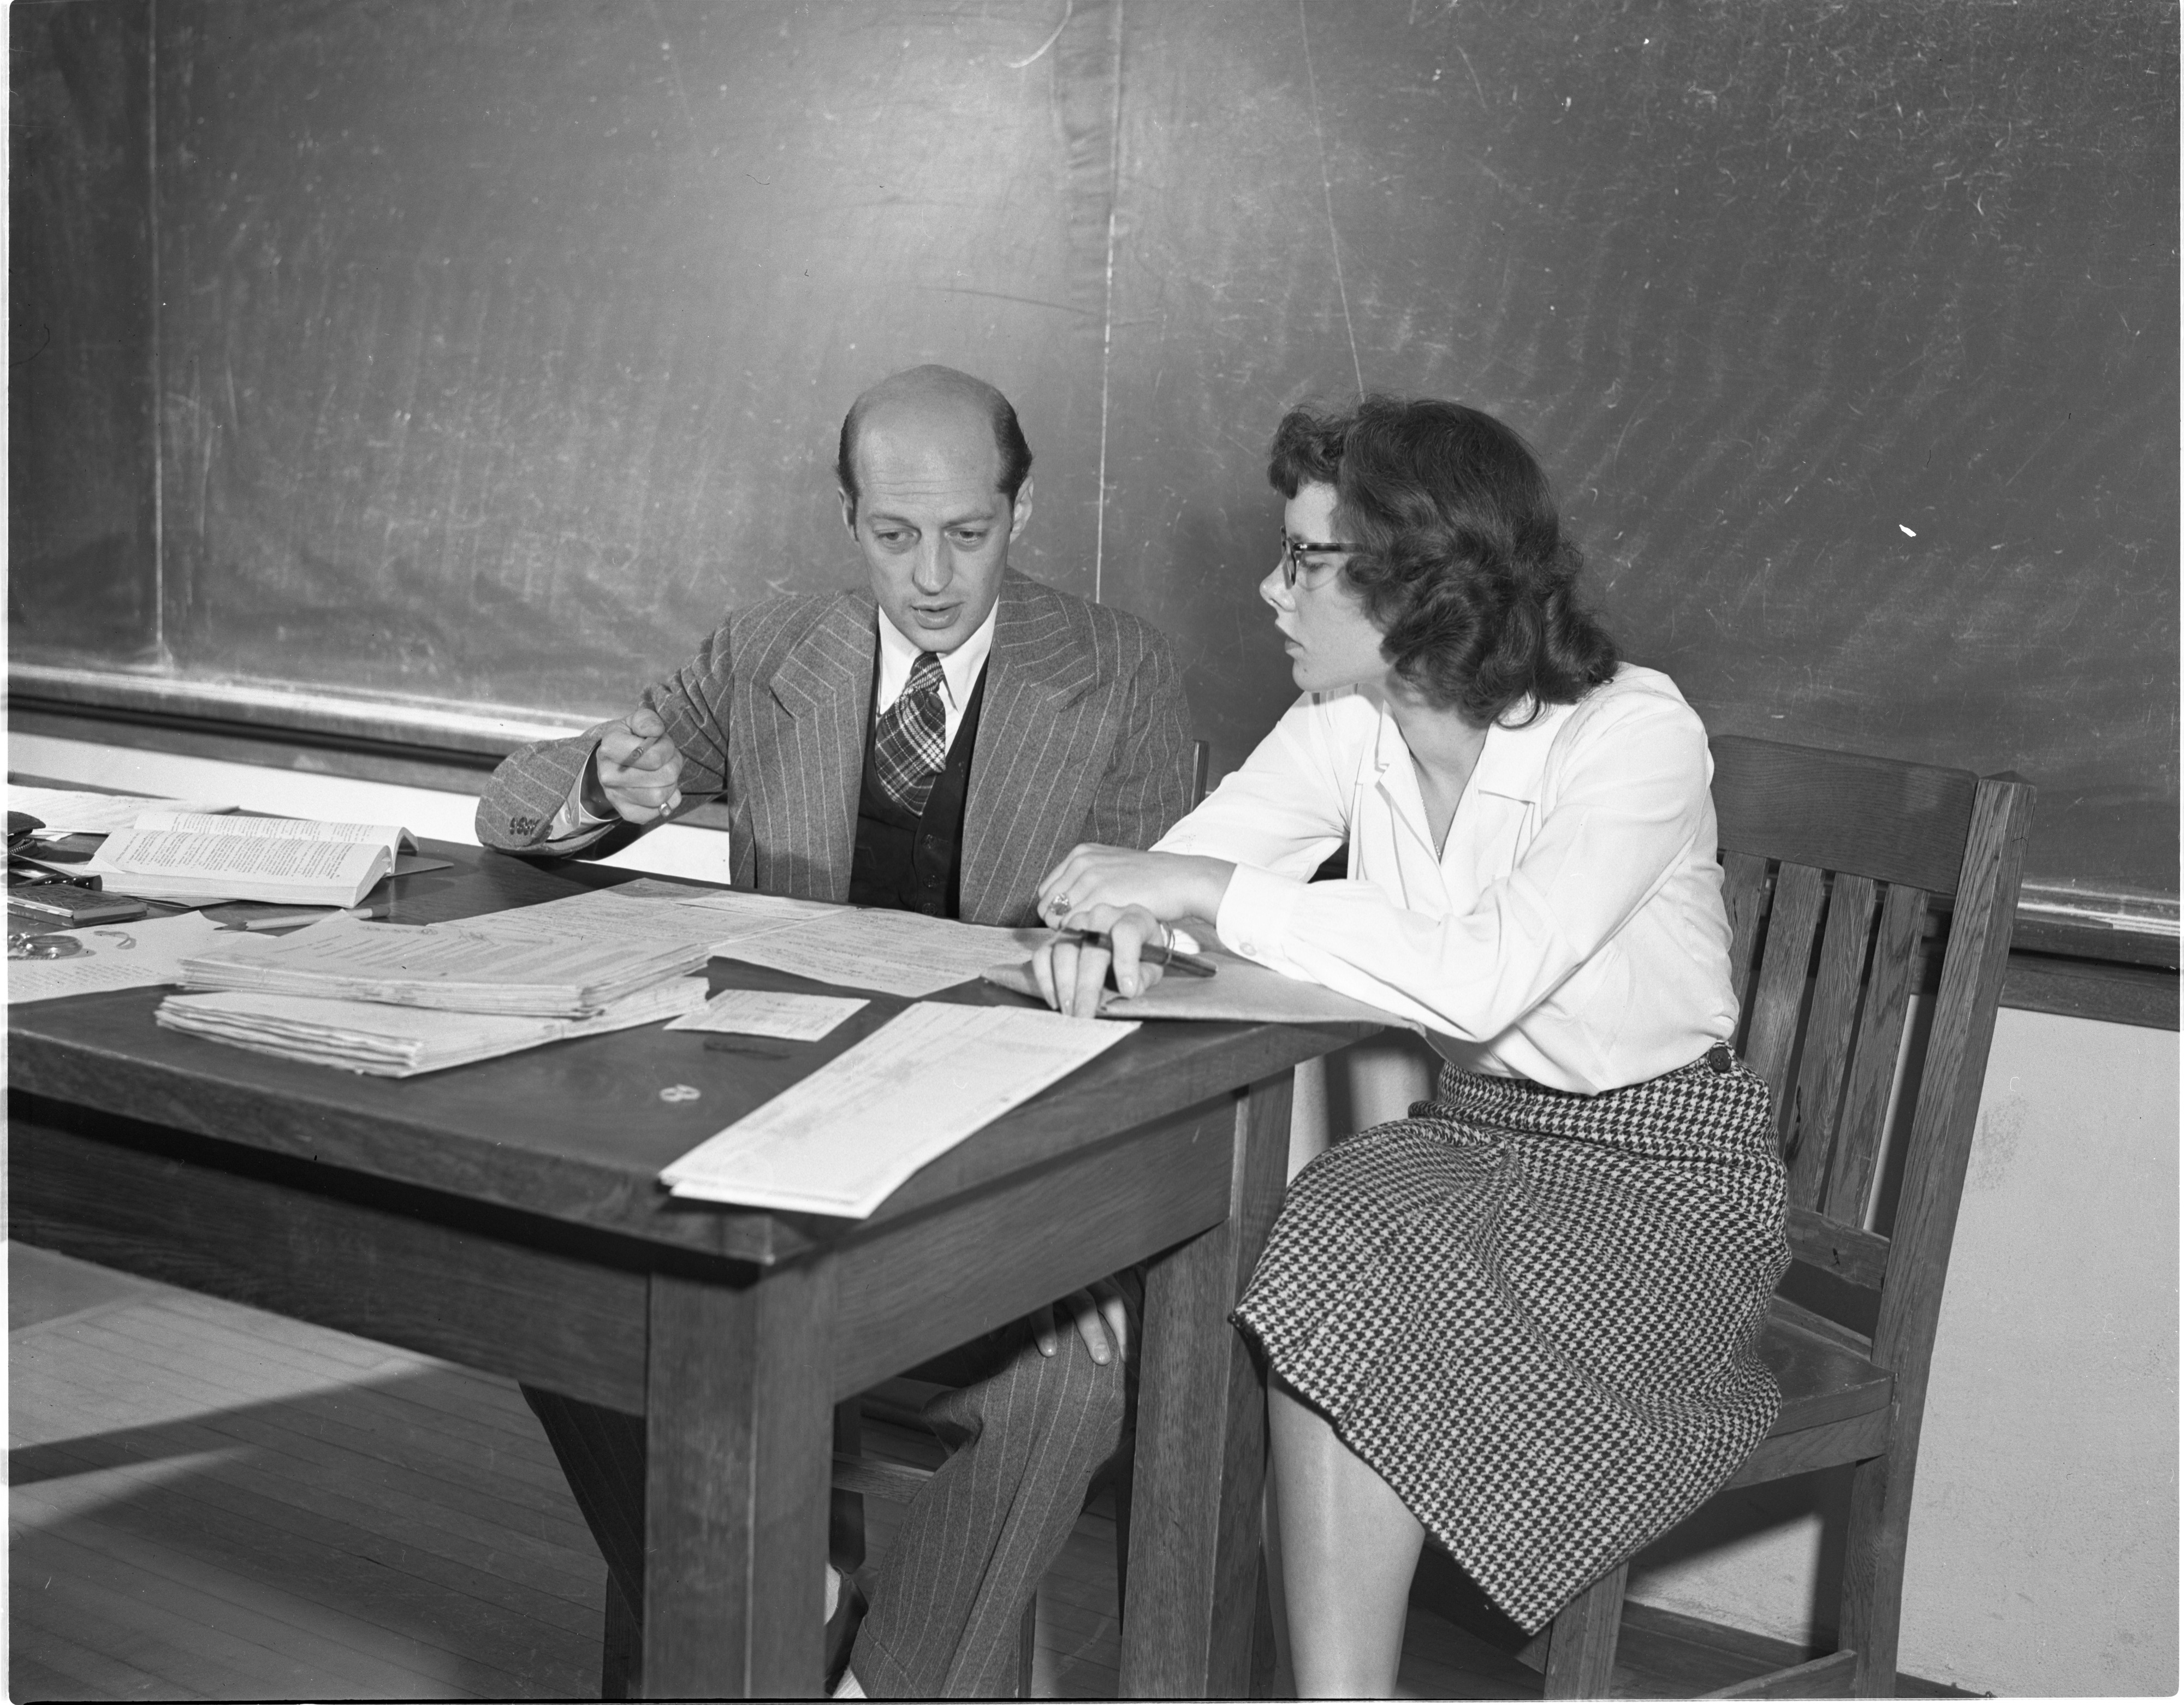 A New University Of Michigan Student Meets With Dr. Hugh Norton About Her Academic Program, September 1947 image